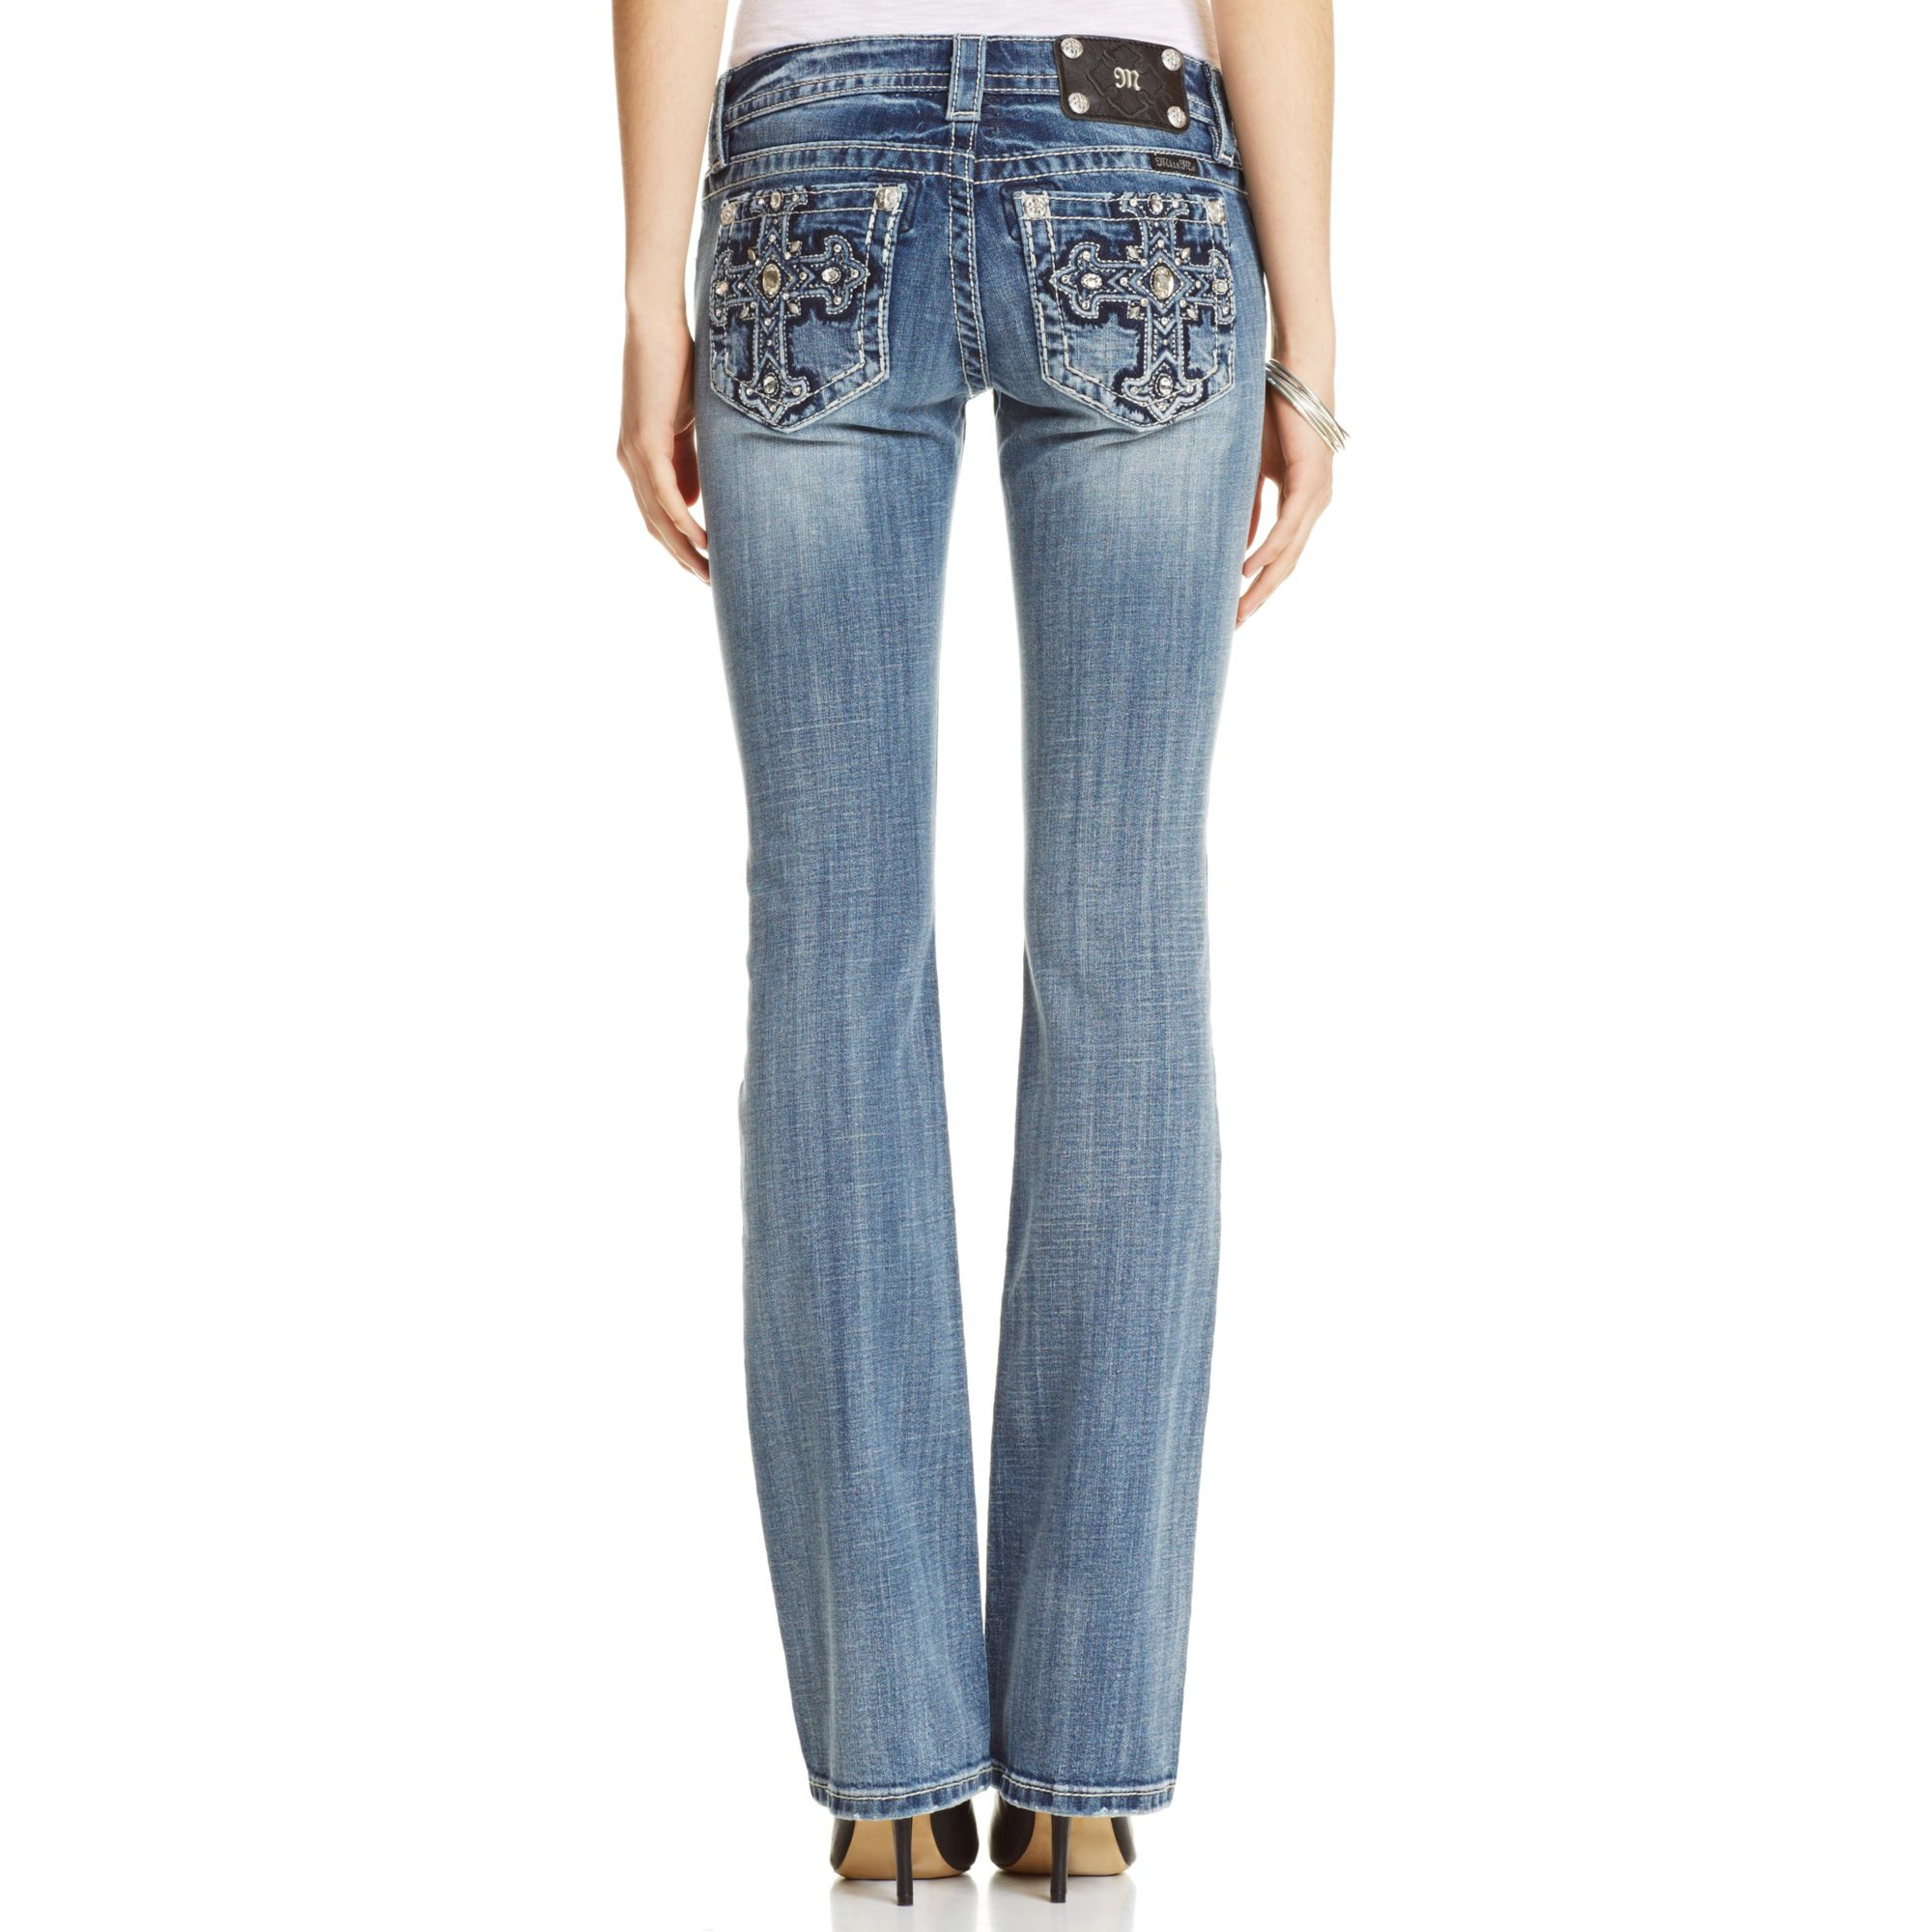 Miss Me Rhinestone Cross Bootcut Jeans in Blue (Medium Blue) | Lyst